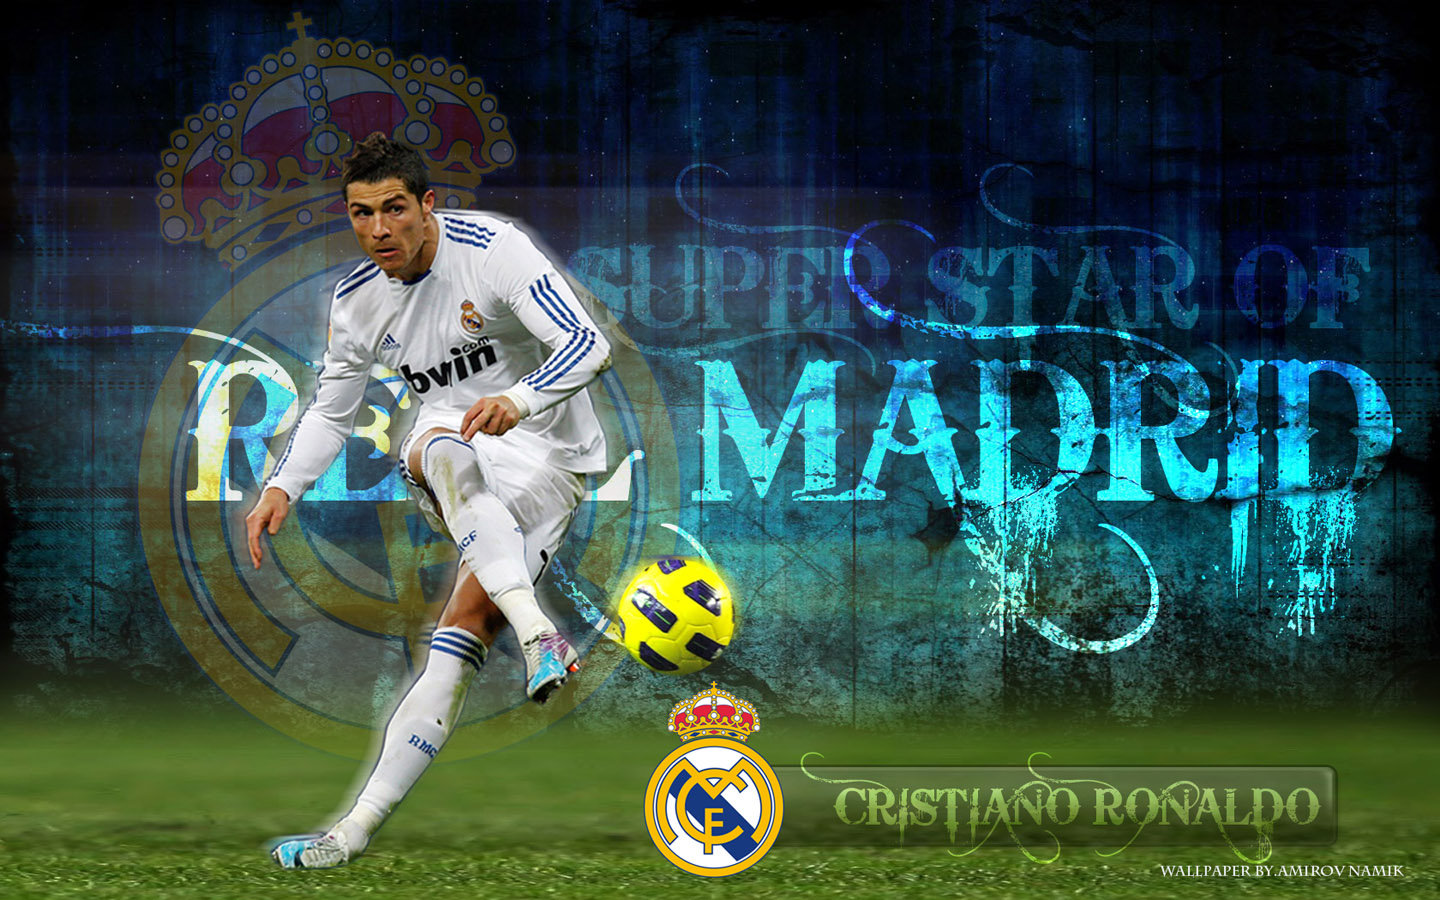 Cristiano-ronaldo-real-madrid-PixelsTalk-Net-wallpaper-wpc5803793